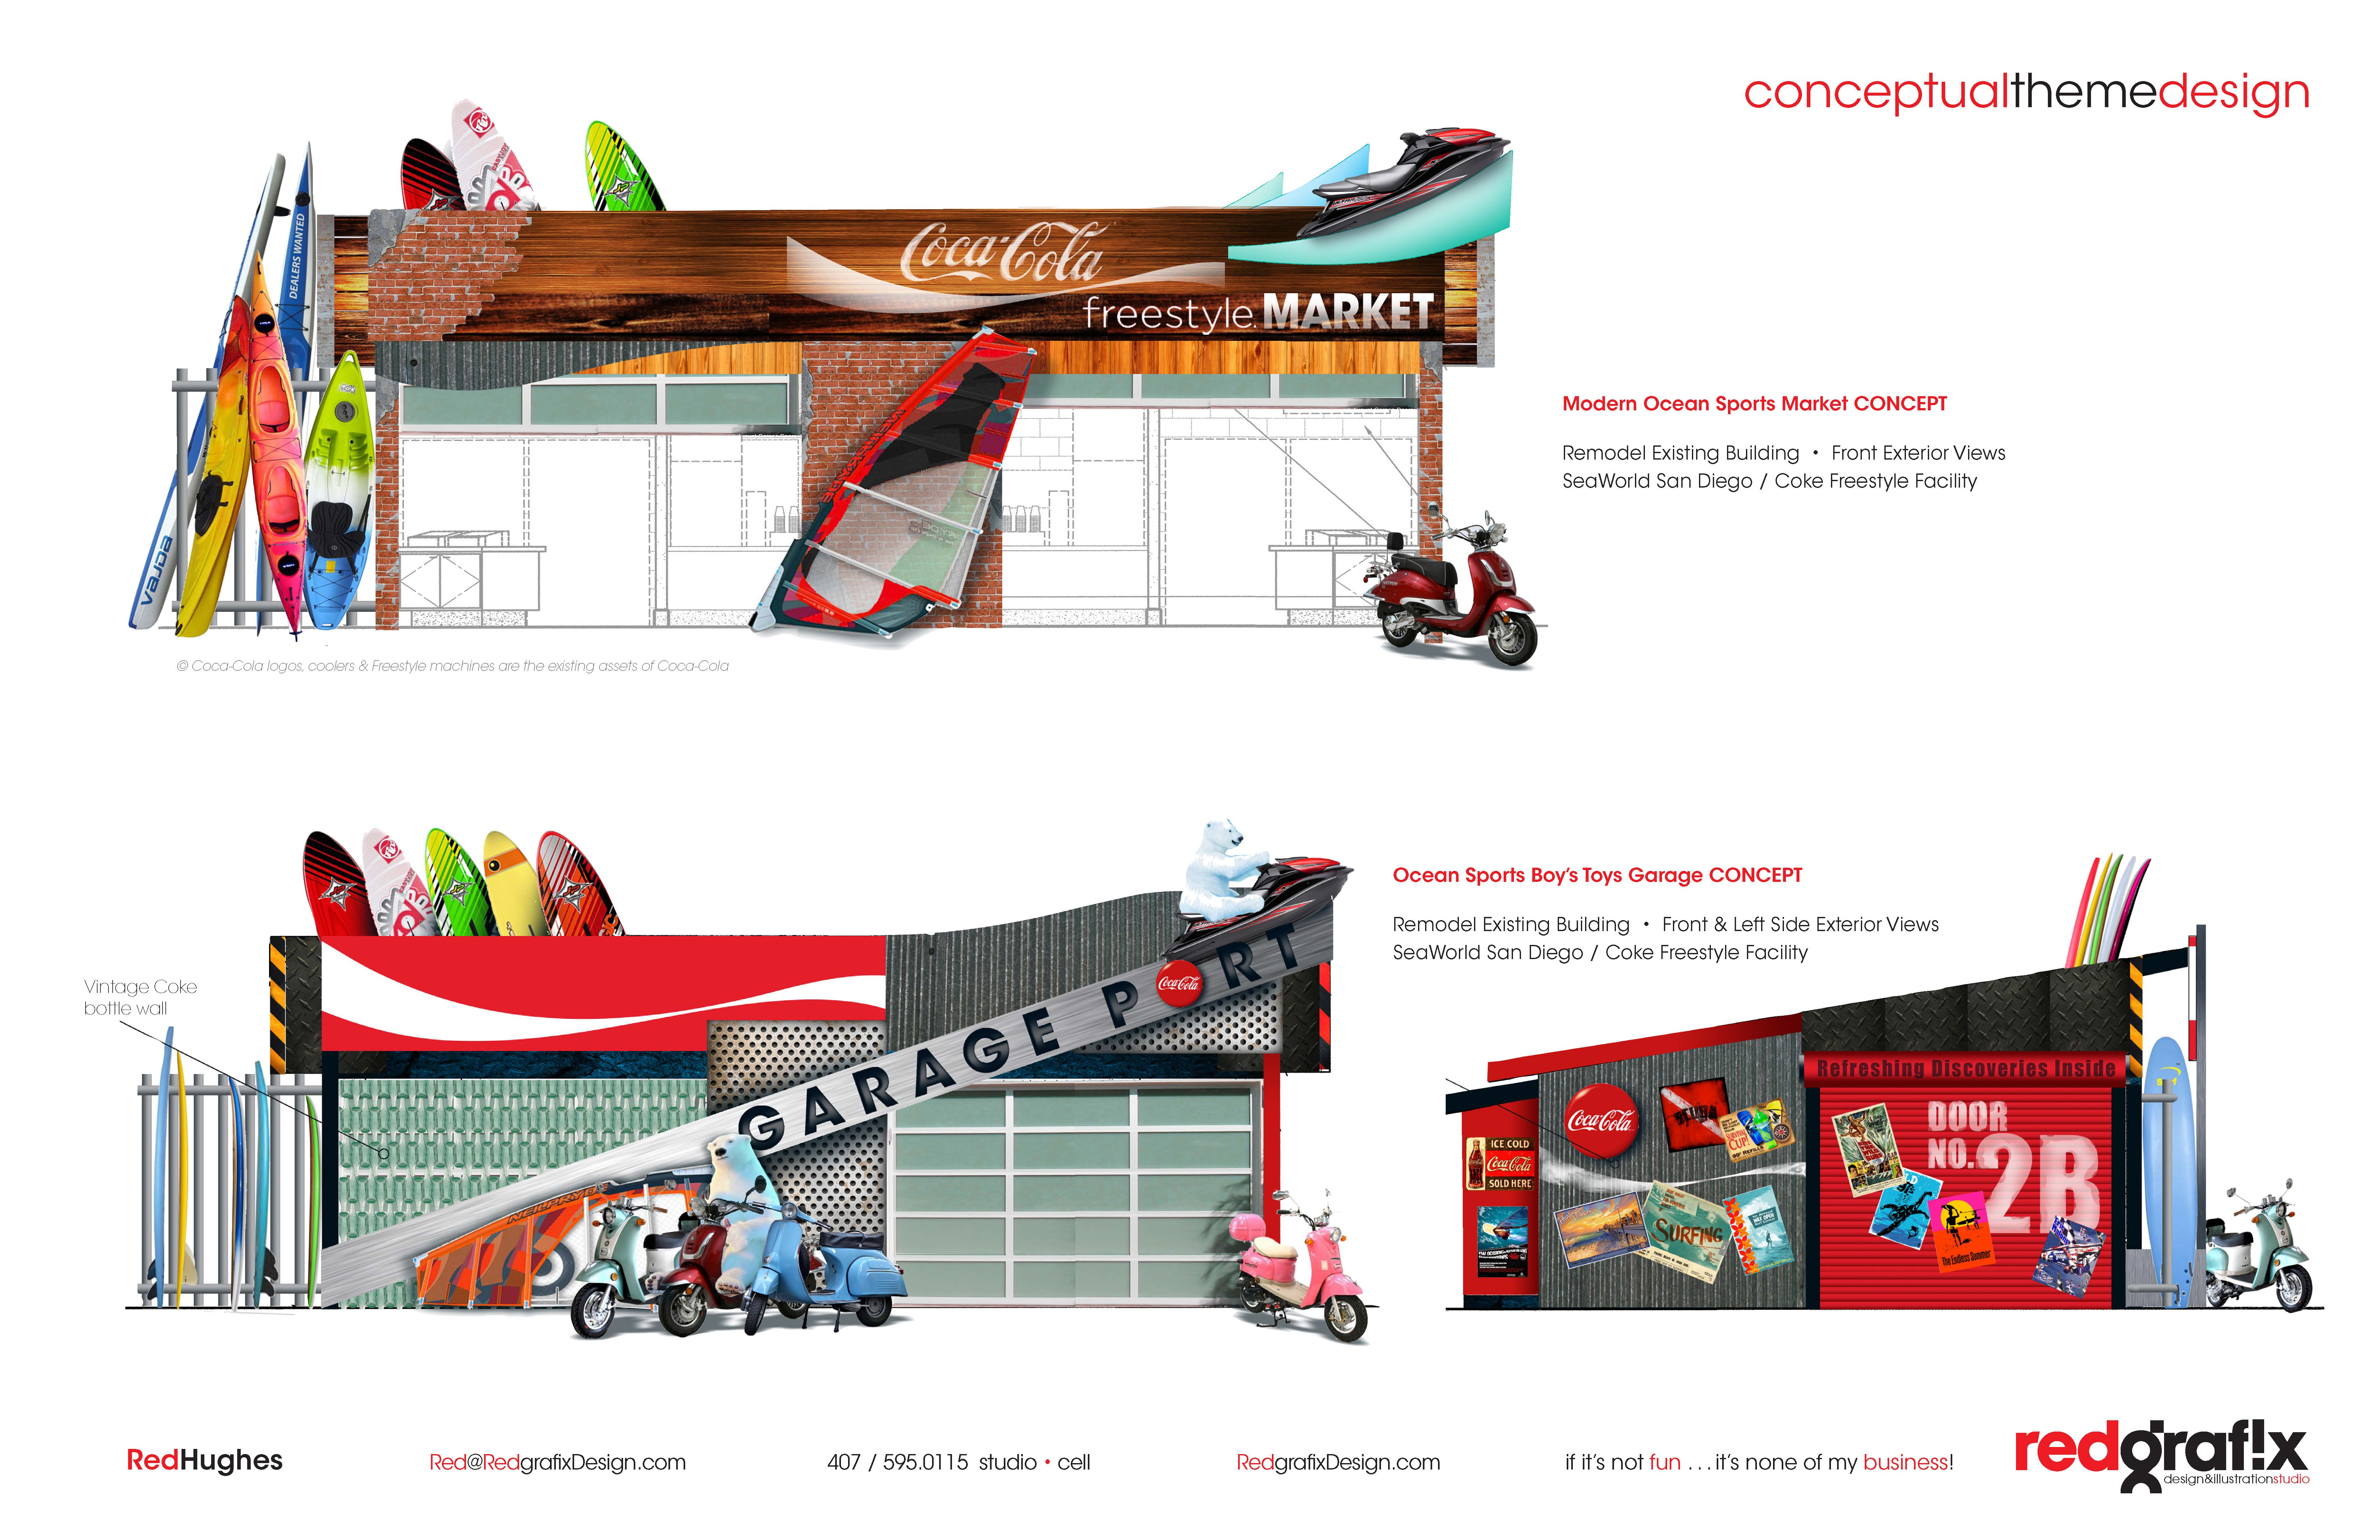 Conceptual Themed Facilities Design